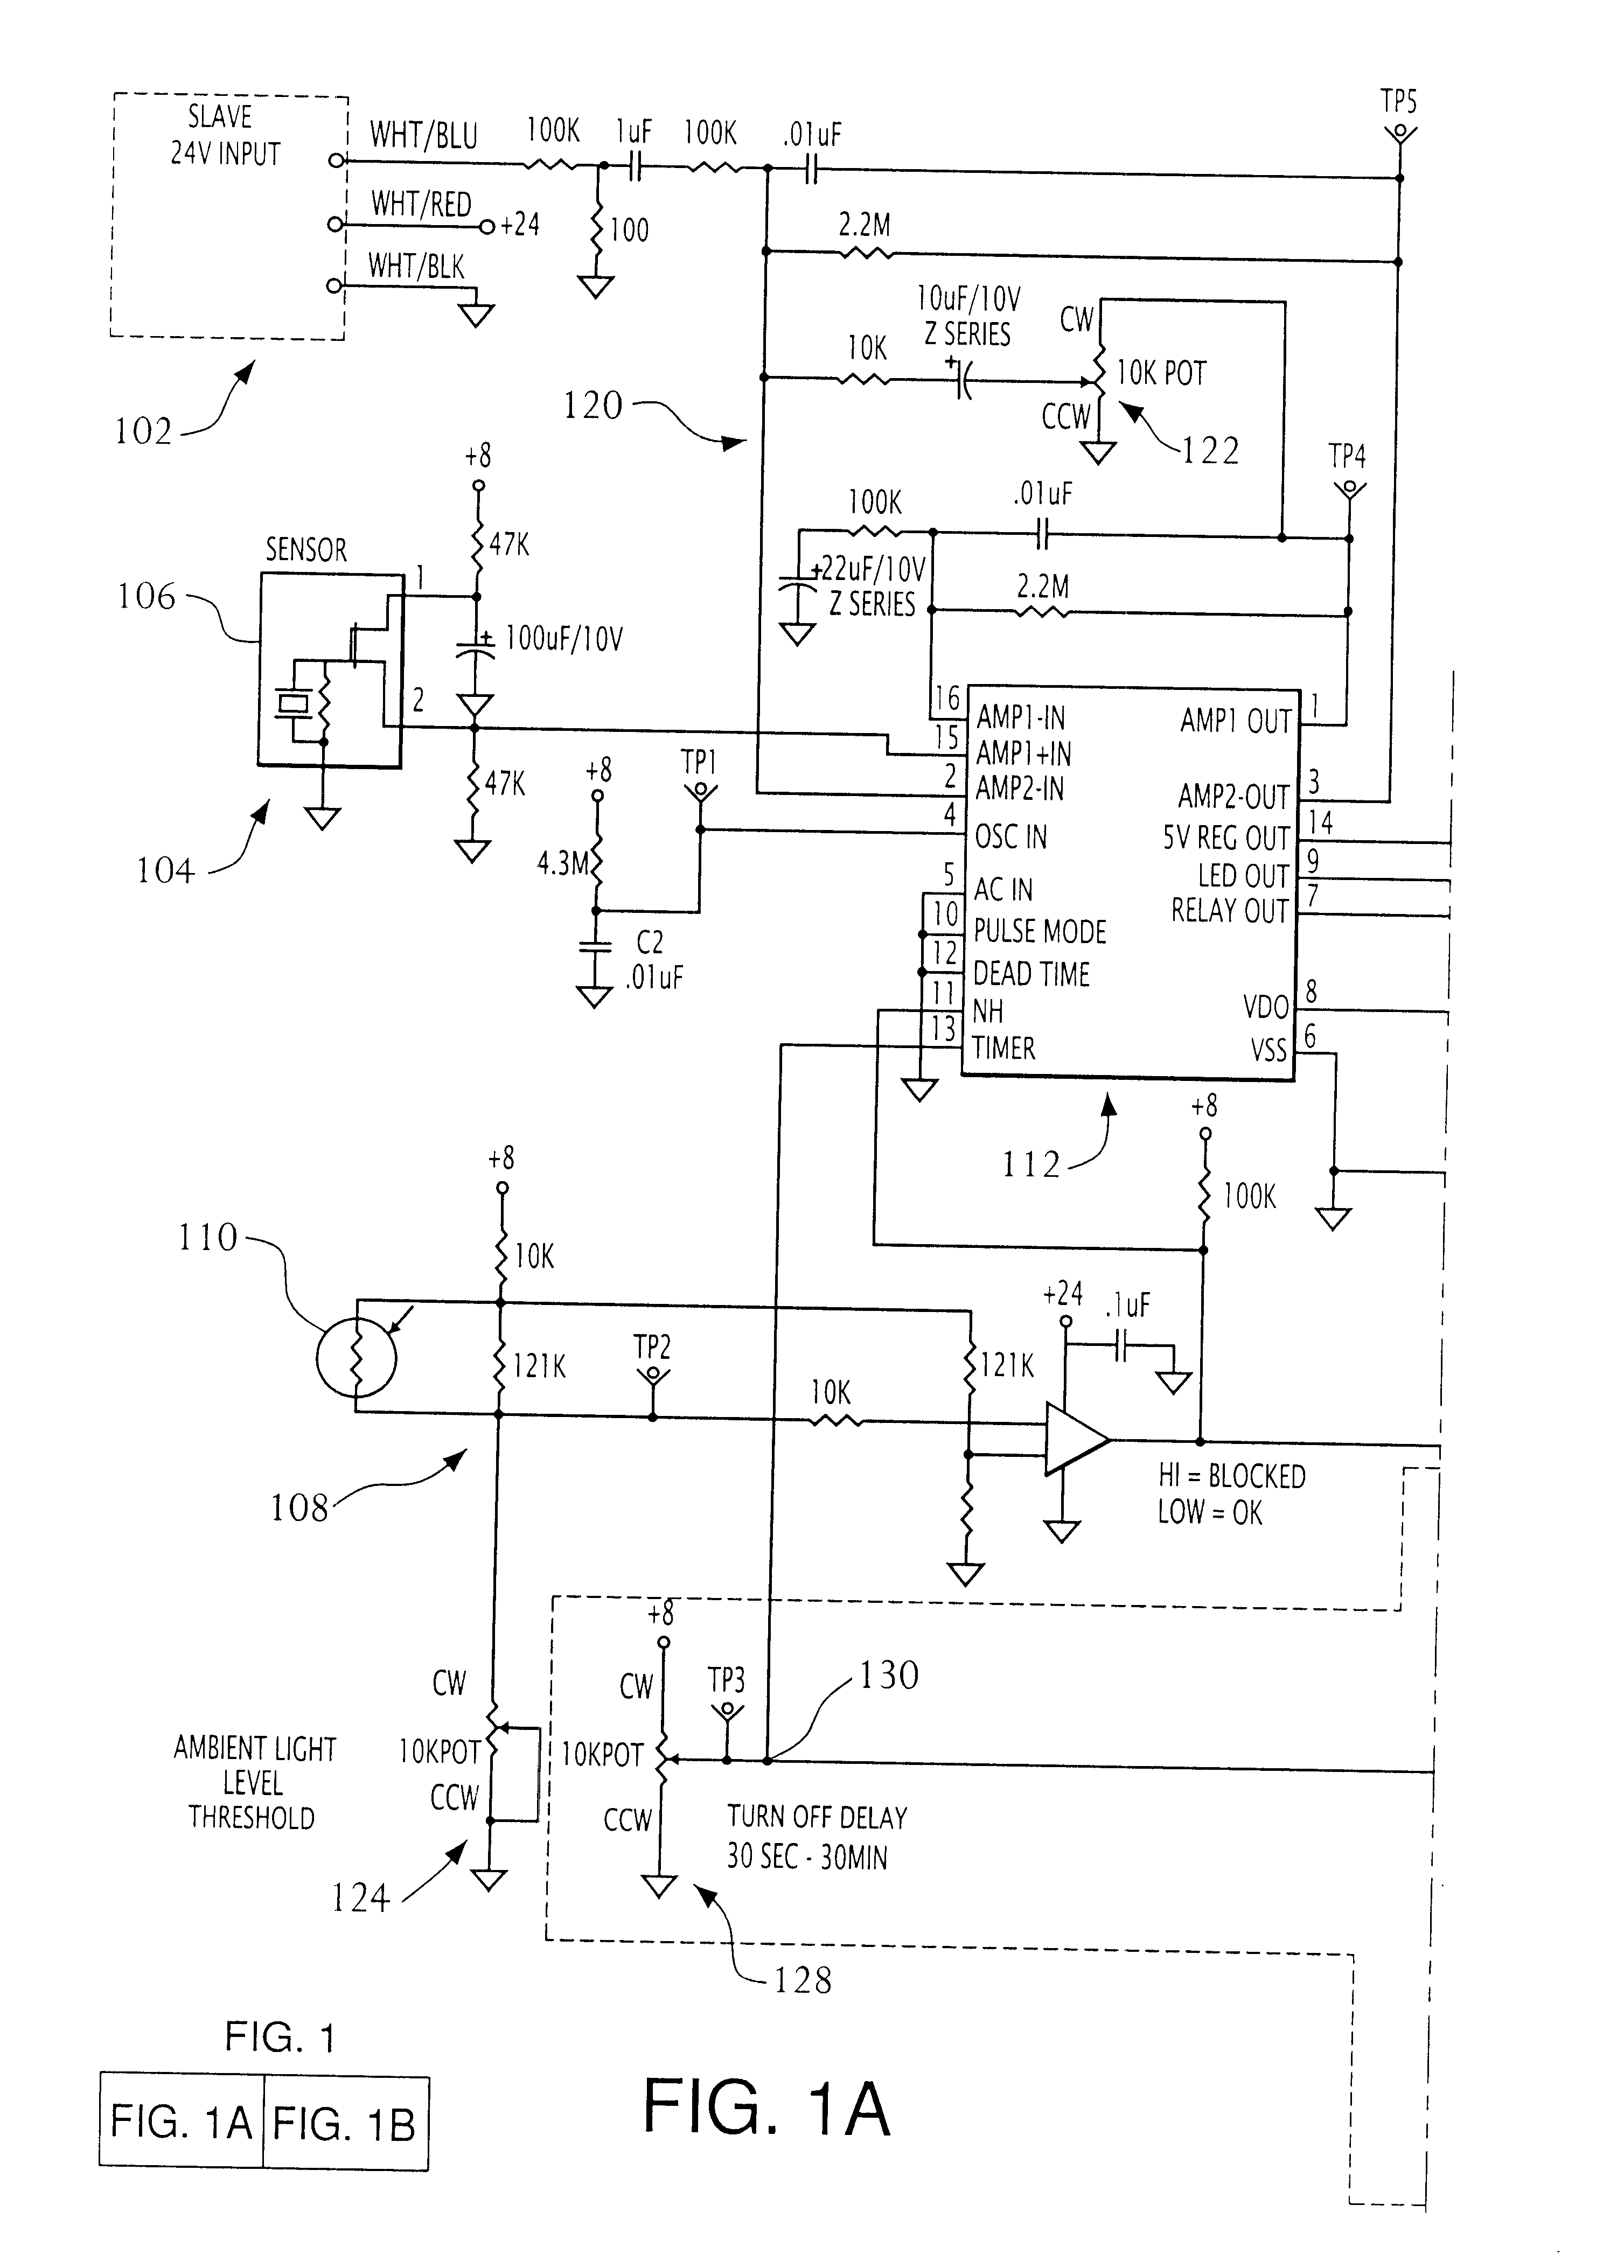 Steinel Sensor Wiring Diagram 29 Images Ceiling Occupancy Us06466826 20021015 D00001 Patent Us6466826 Apparatus And Method For Providing Bypass At